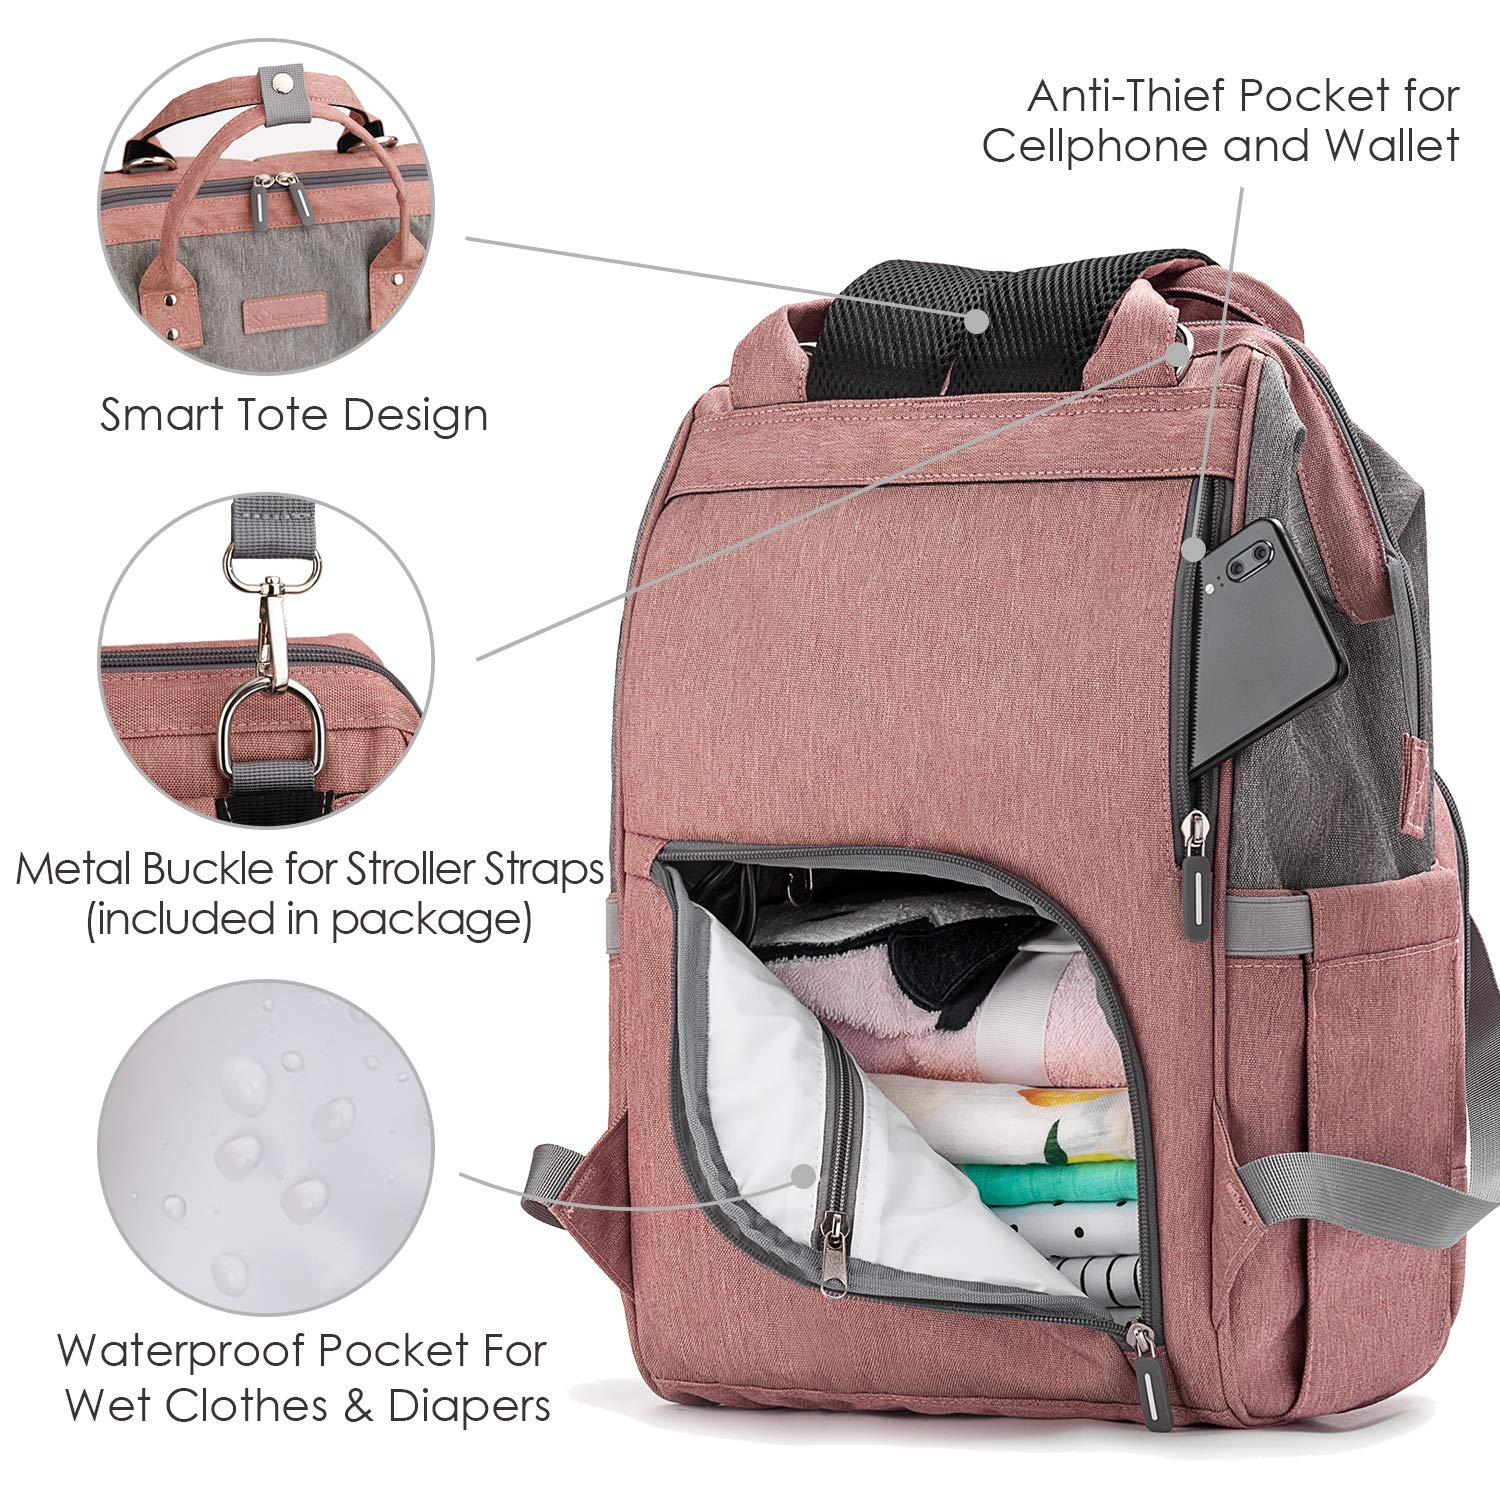 Diaper Bag Backpack Nappy Bag Upsimples Baby Bags for Mom Maternity Diaper Bag with USB Charging Port Stroller Straps Thermal Pockets Wide Shoulder Straps Water Resistant  Pink by upsimples (Image #4)